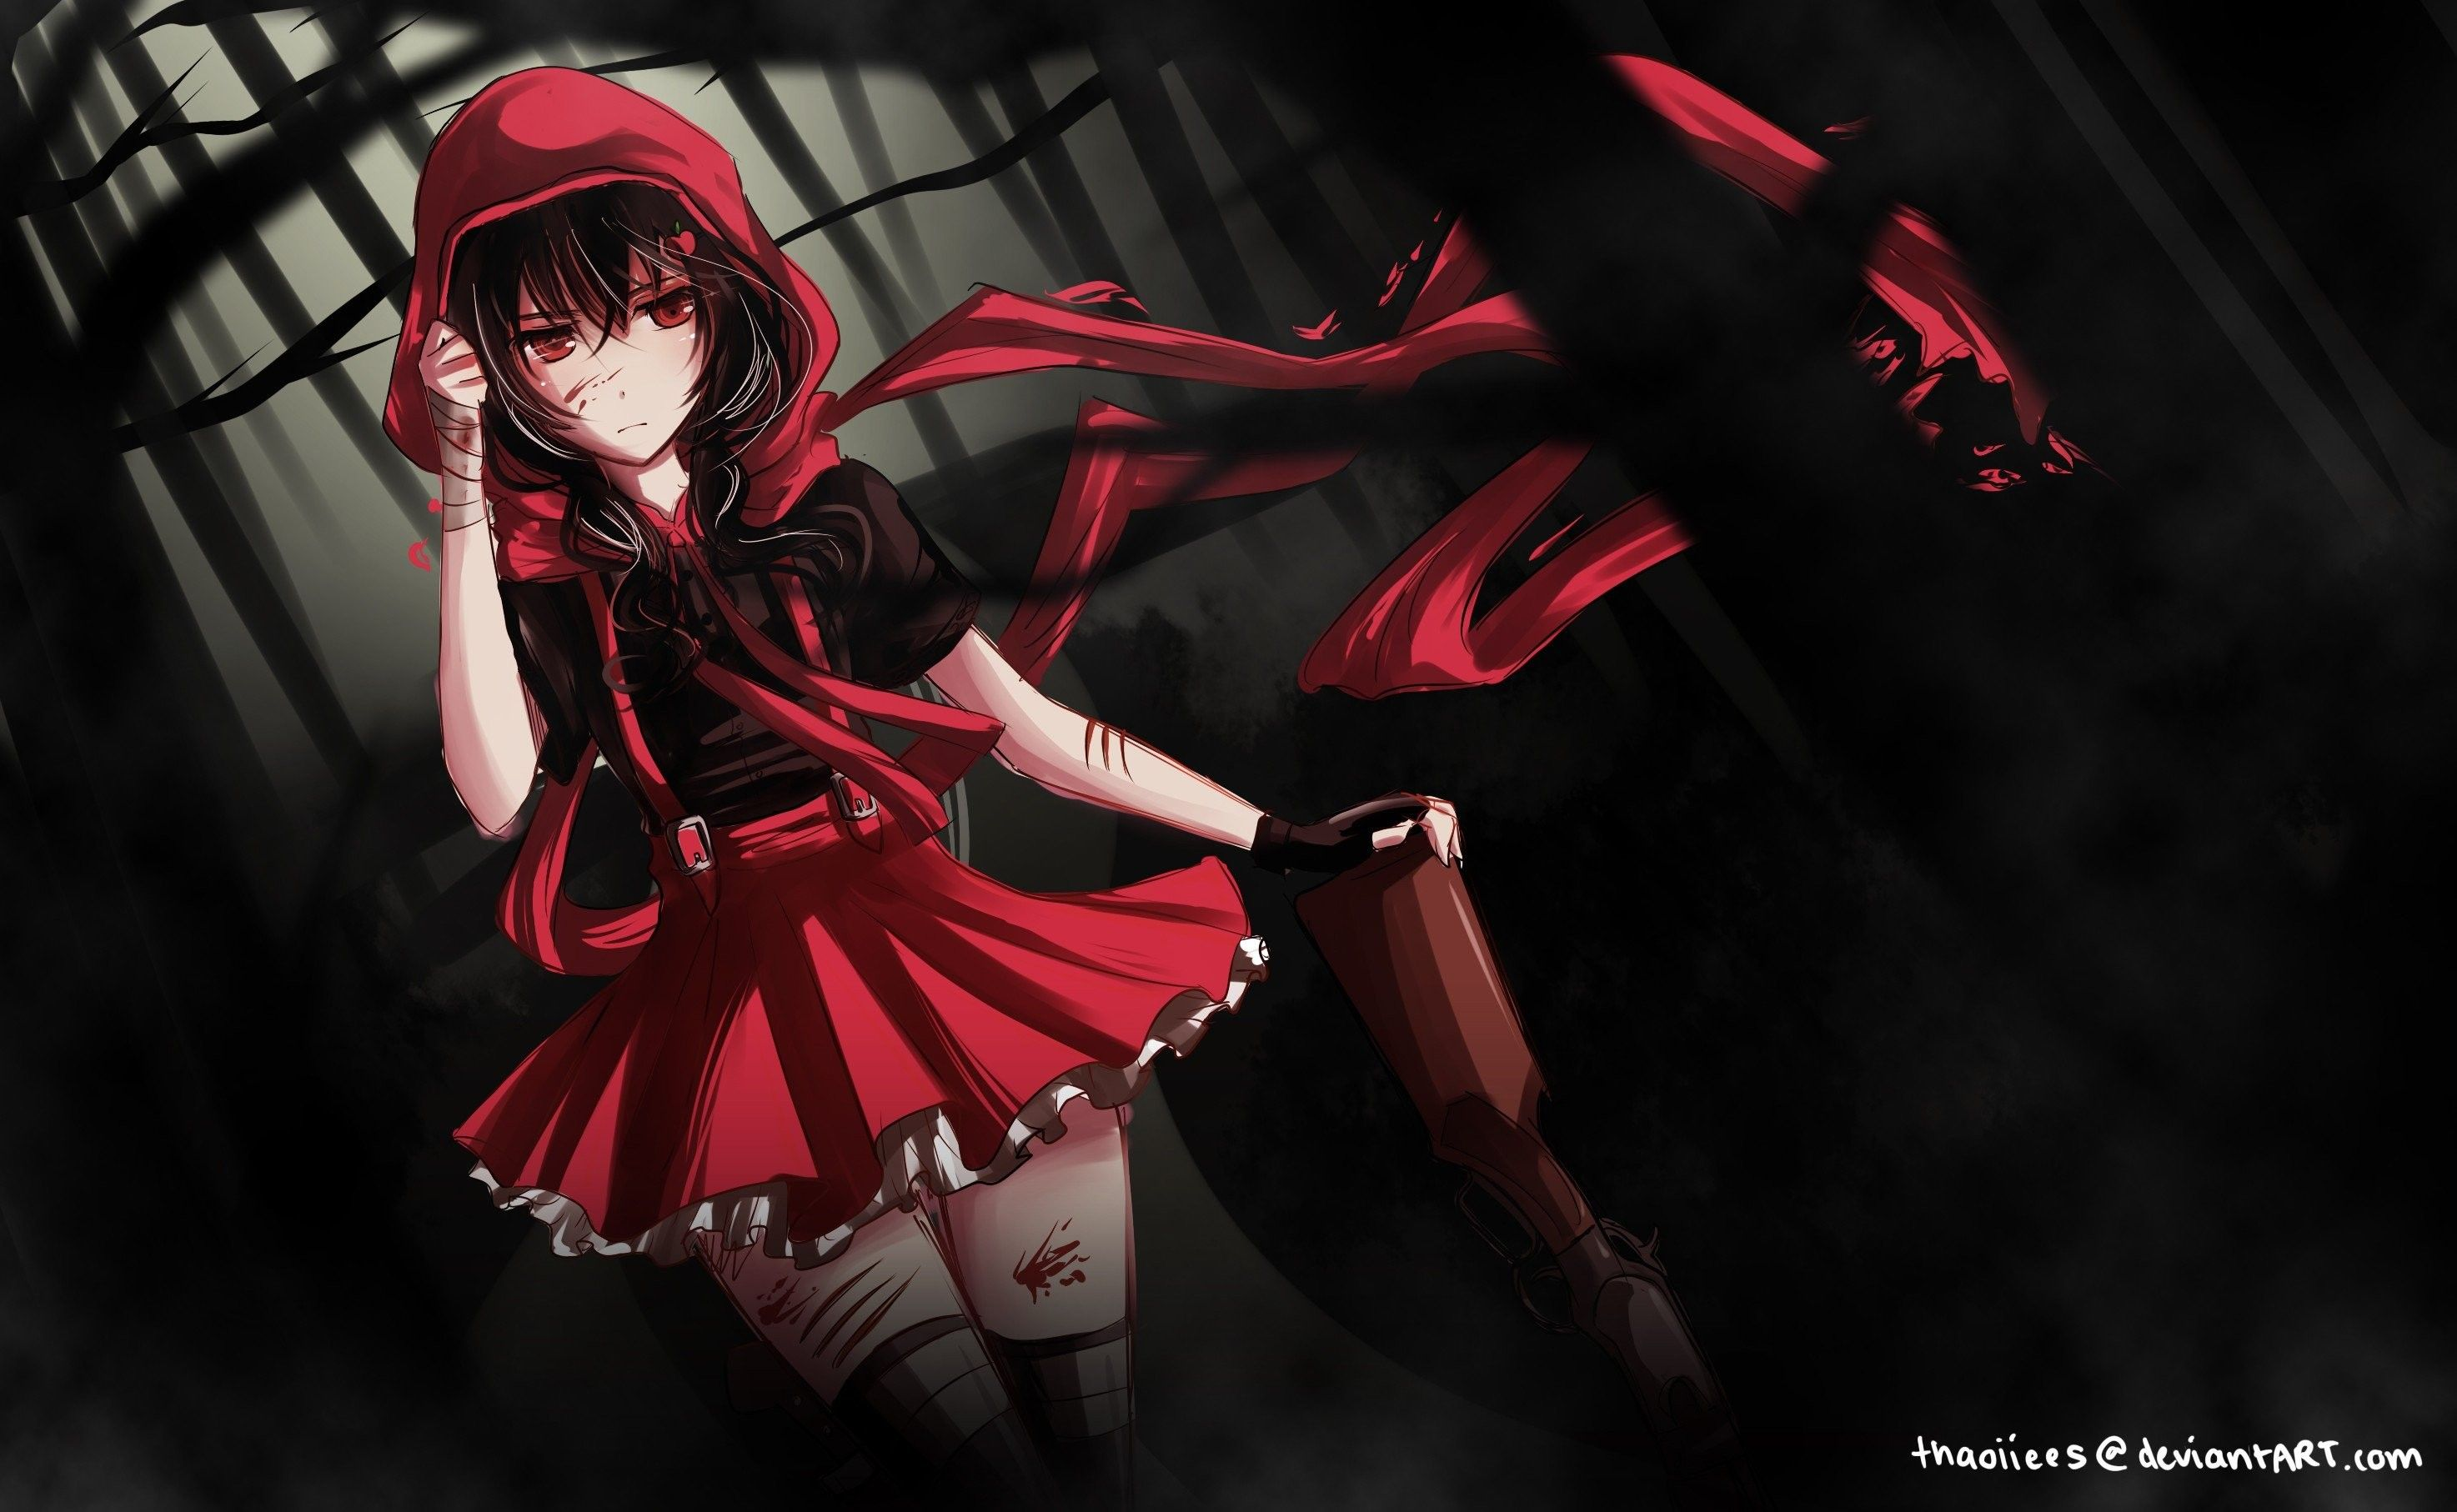 2947x1814 Red and Black Anime Wallpaper (72+ images)